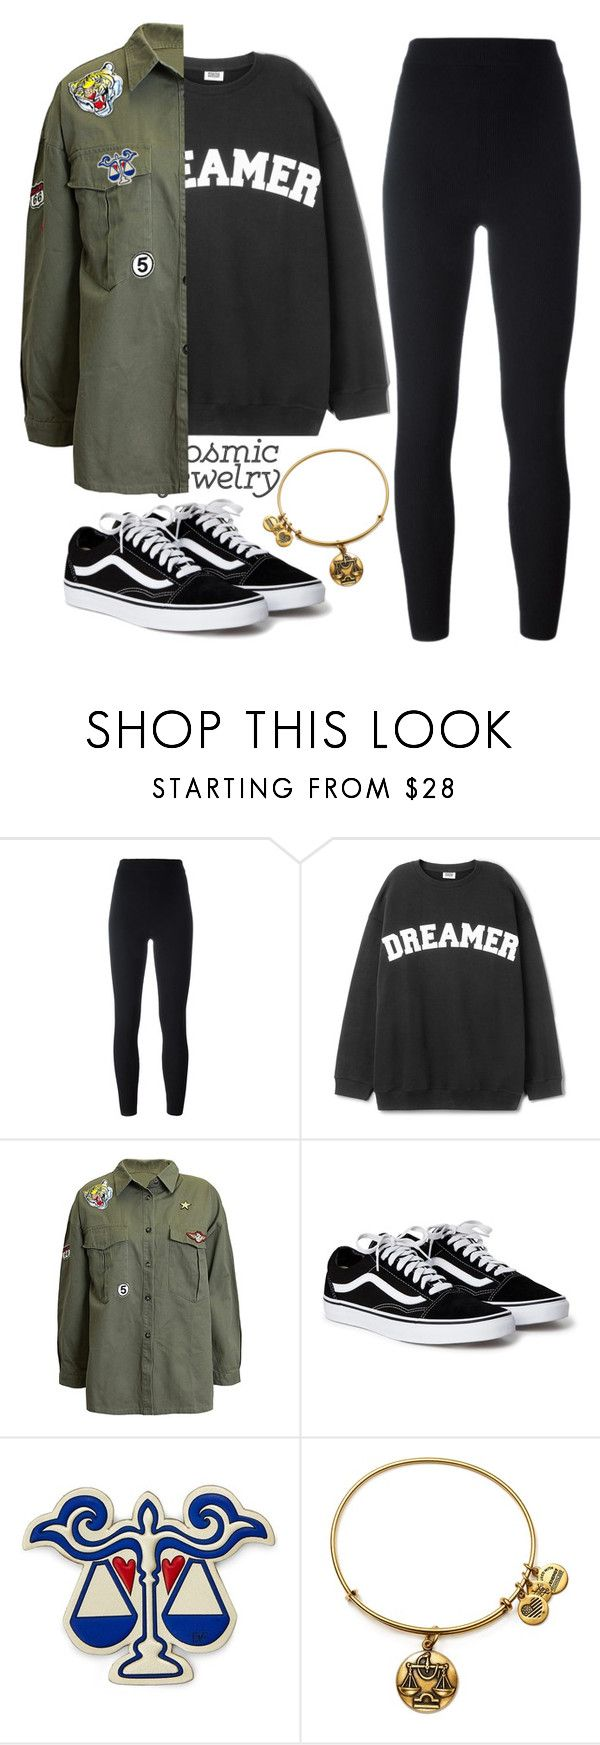 """Libra"" by kamarkhalili ❤ liked on Polyvore featuring Yeezy by Kanye West, Sans Souci, Diane Von Furstenberg and Alex and Ani"